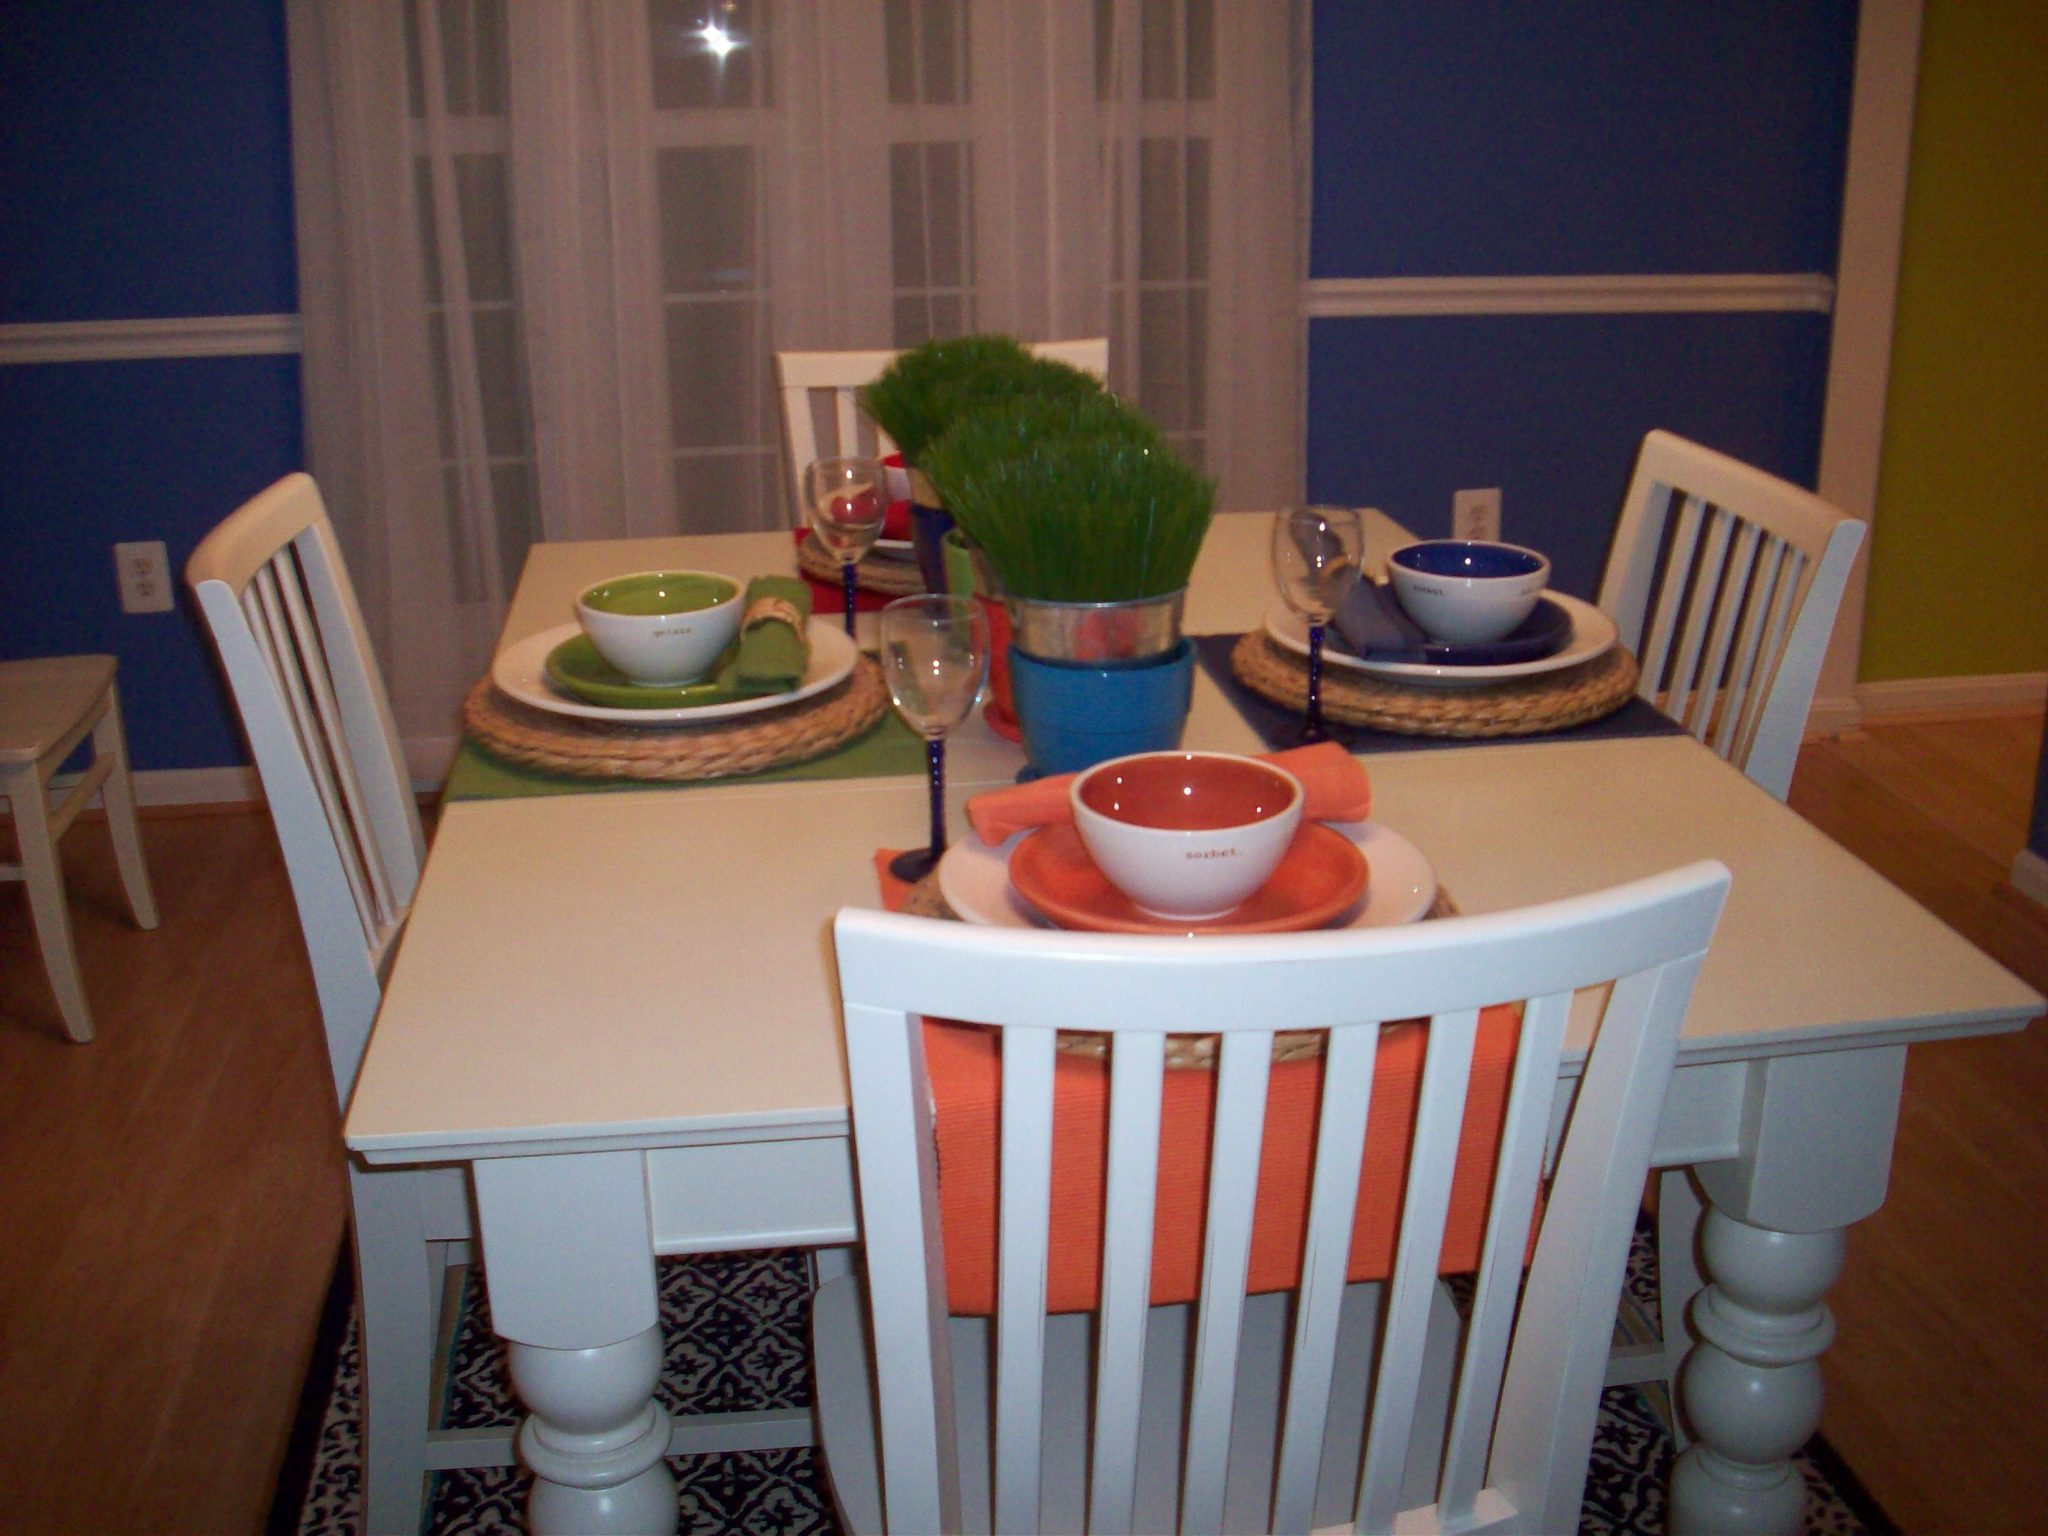 Photo of a suqare table with a white table cloth and different colored place settings. No one is sitting at the table.